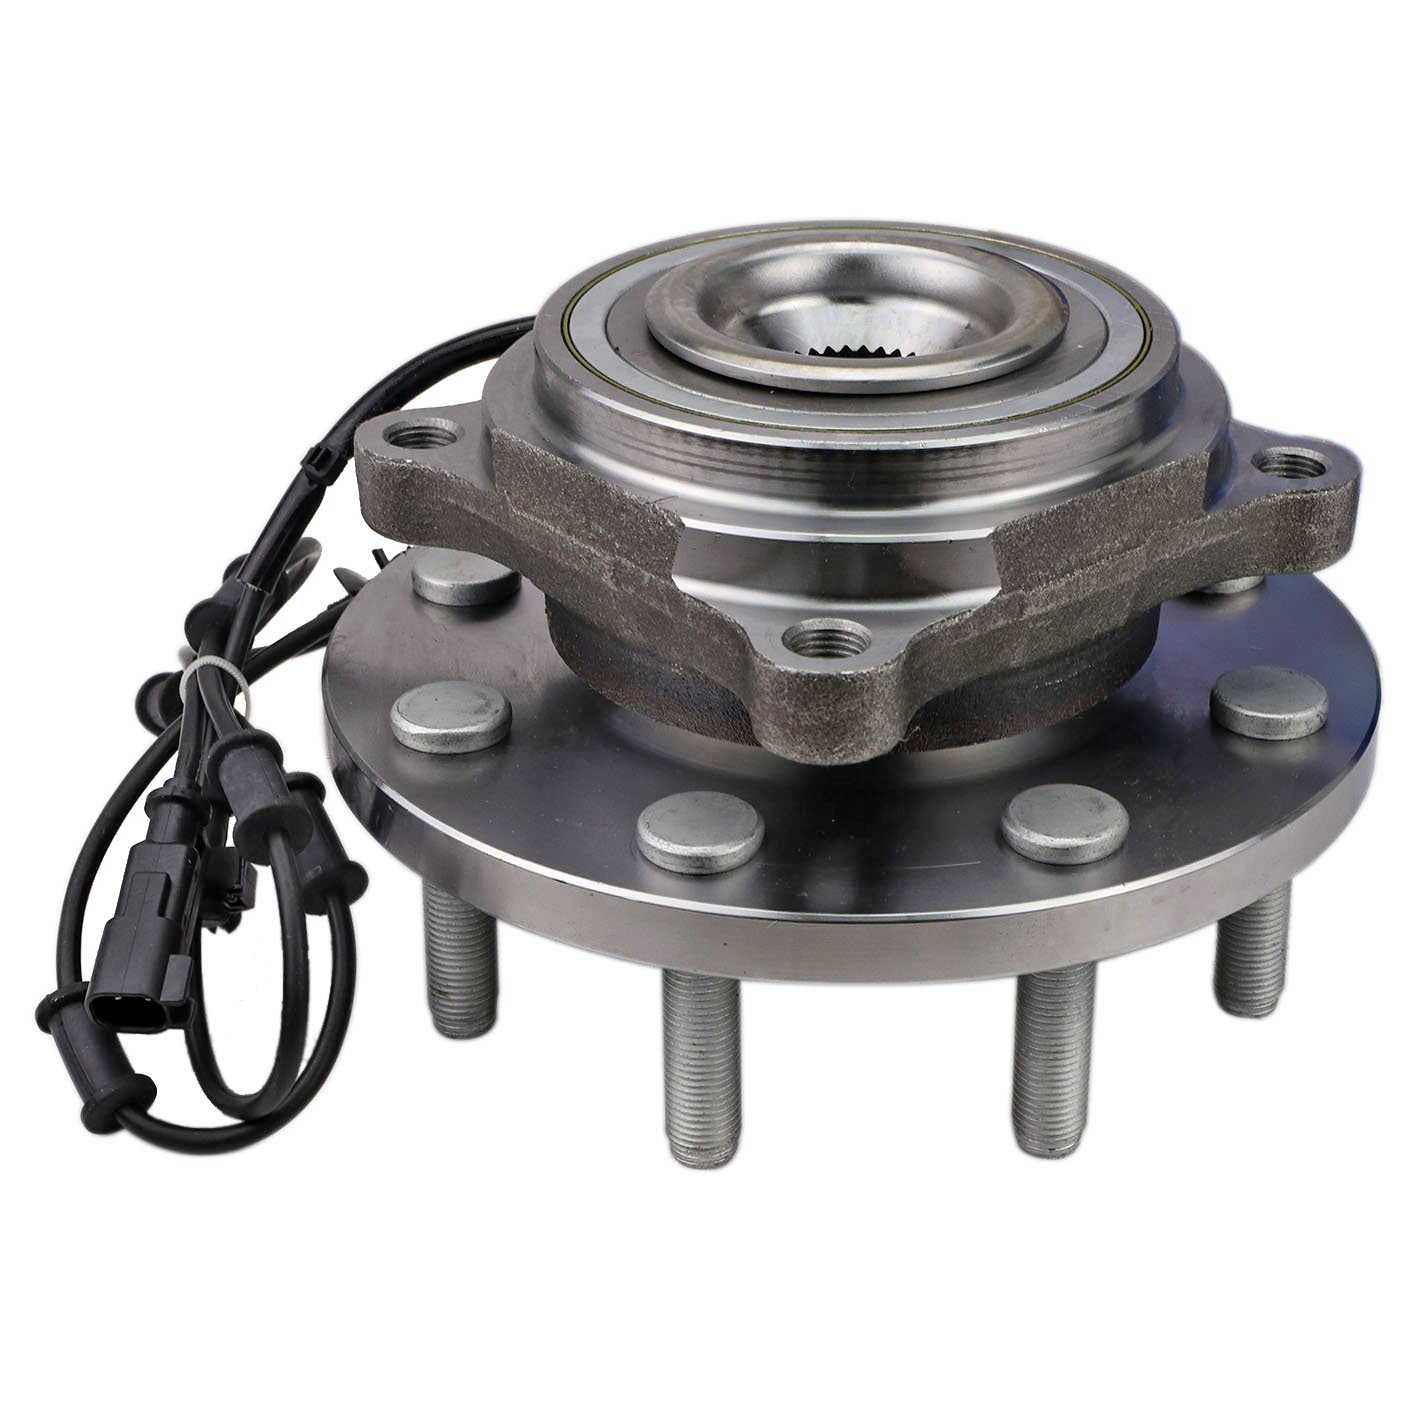 CRS NT590467 New Wheel Hub Bearing Assembly,Front Left (Driver)/ Right (Passenger), for 2012-2013 Dodge Ram 3500, Ram 2500/3500, 4WD … by CRS